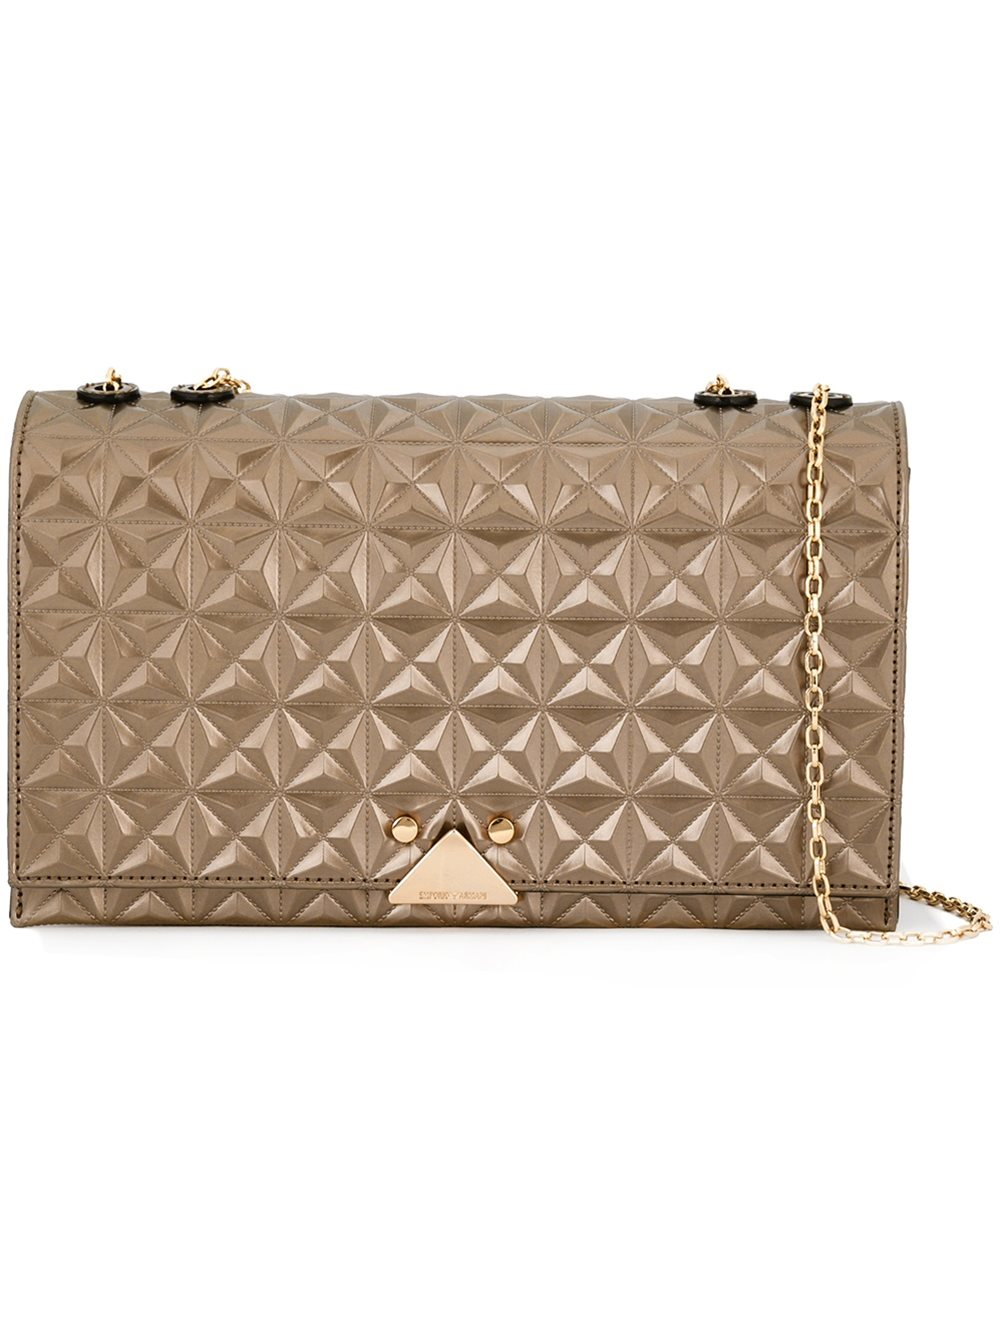 Lyst - Emporio Armani Quilted Crossbody Bag in Metallic 06d2ad7871d77